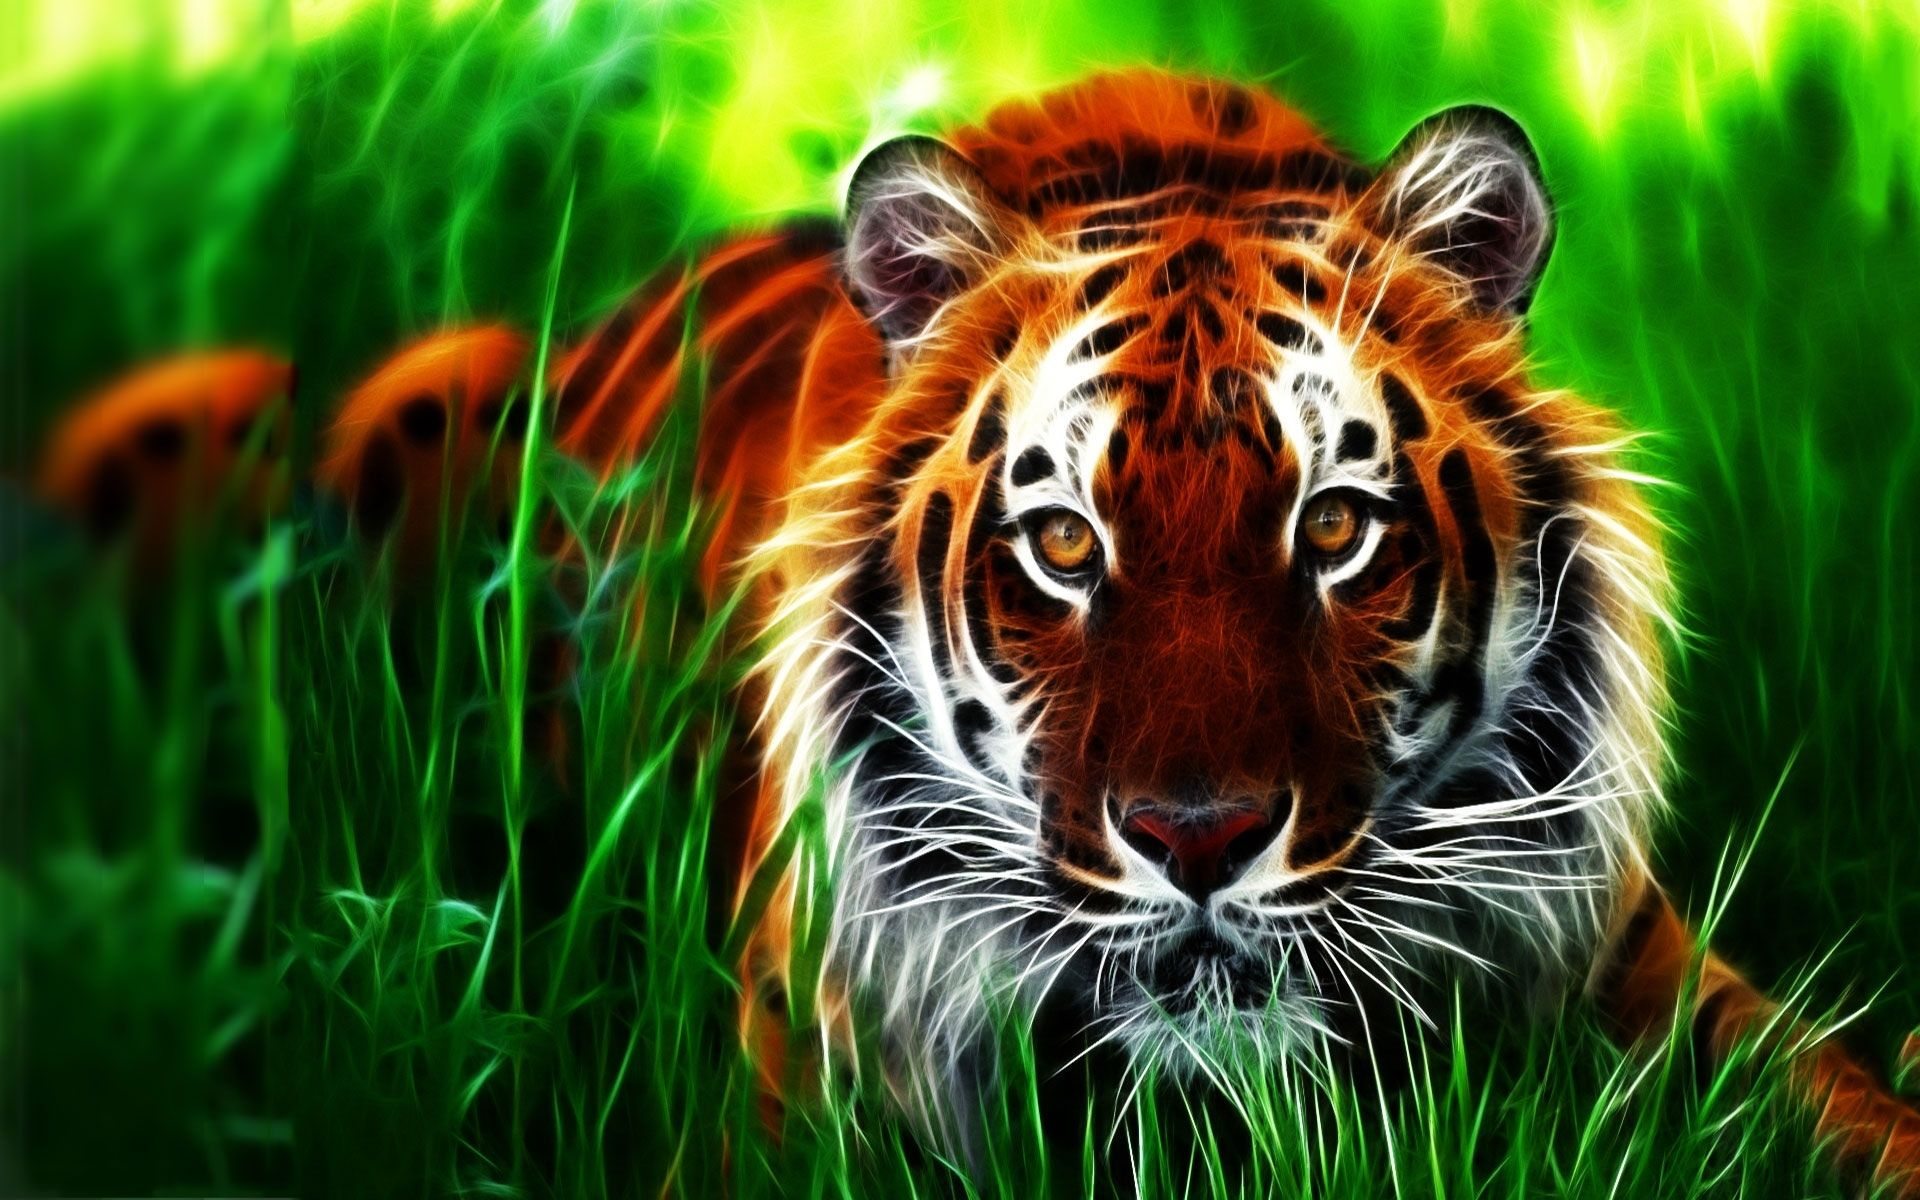 Download 3d Tiger Wallpaper Download Hd New 3d Tiger Wallpaper